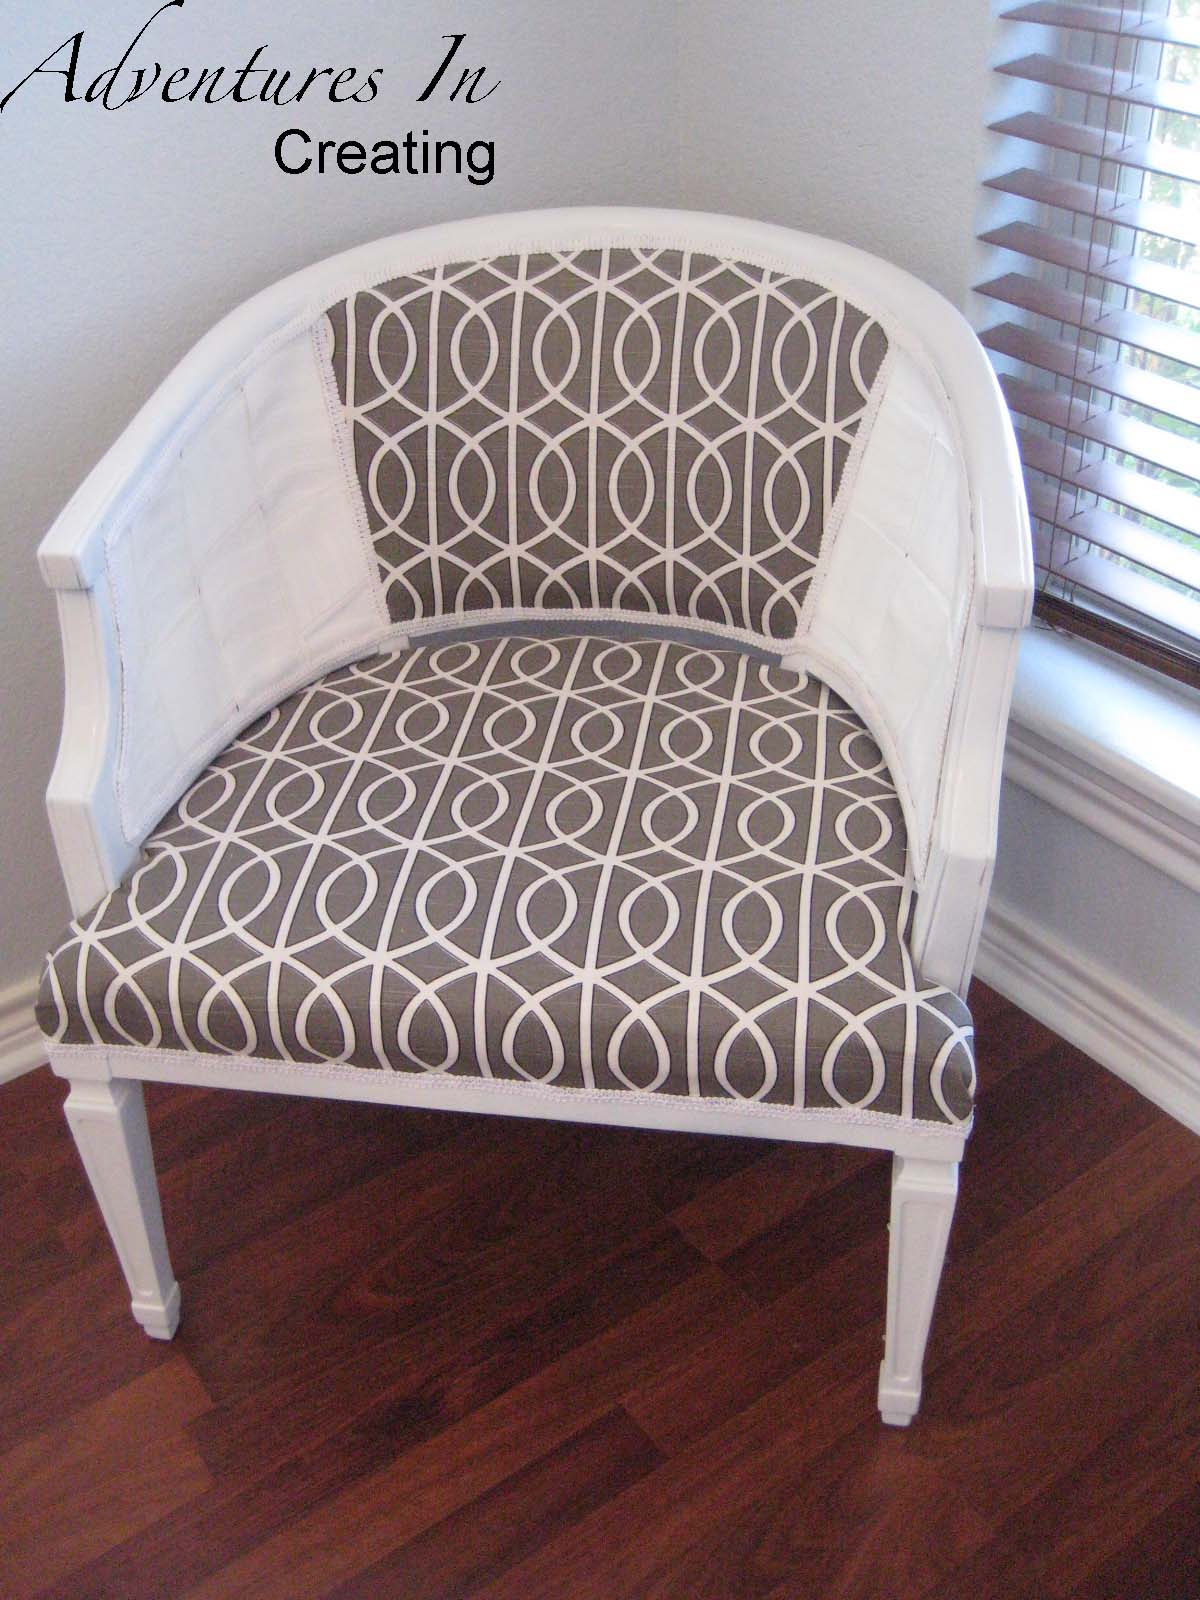 how to cane a chair recliner covers brisbane adventures in creating reupholstered